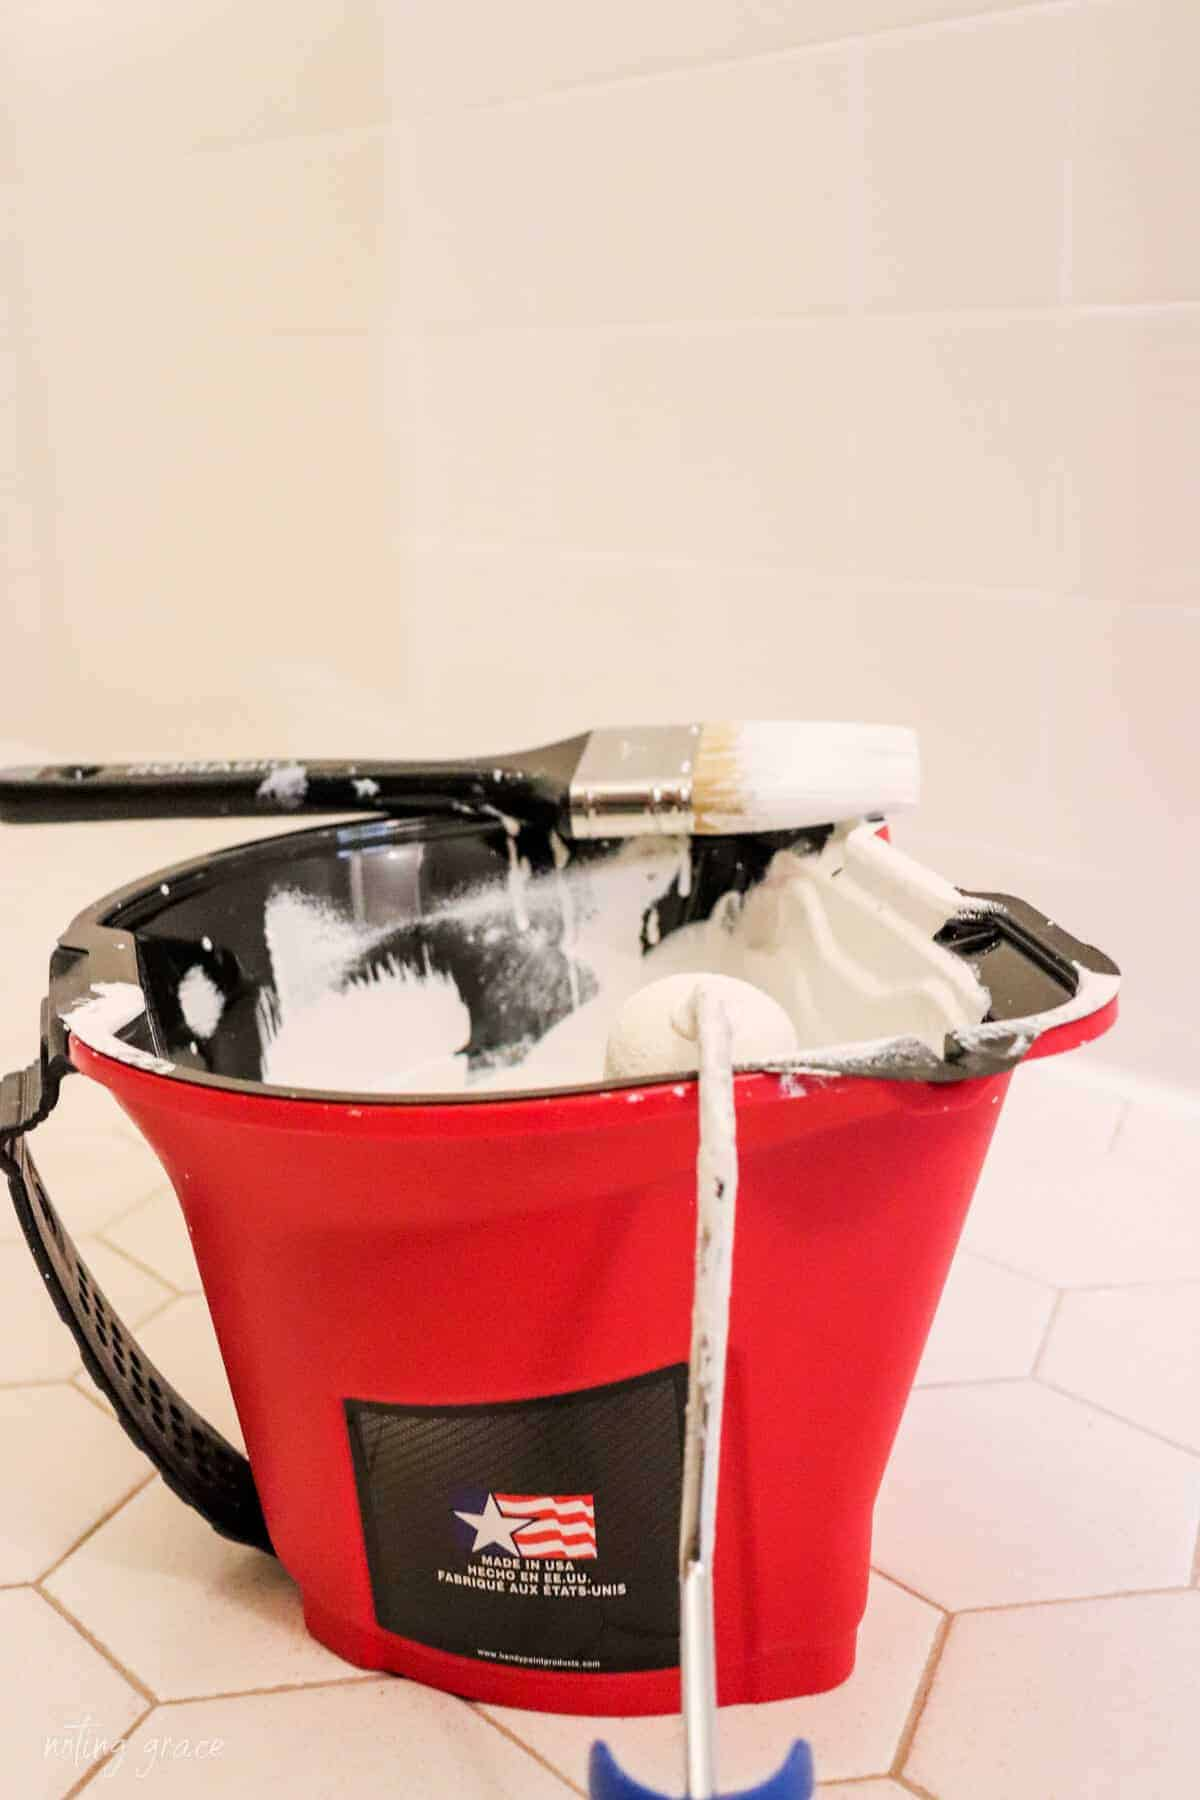 red paint pail filled with white paint, paint brush and roller